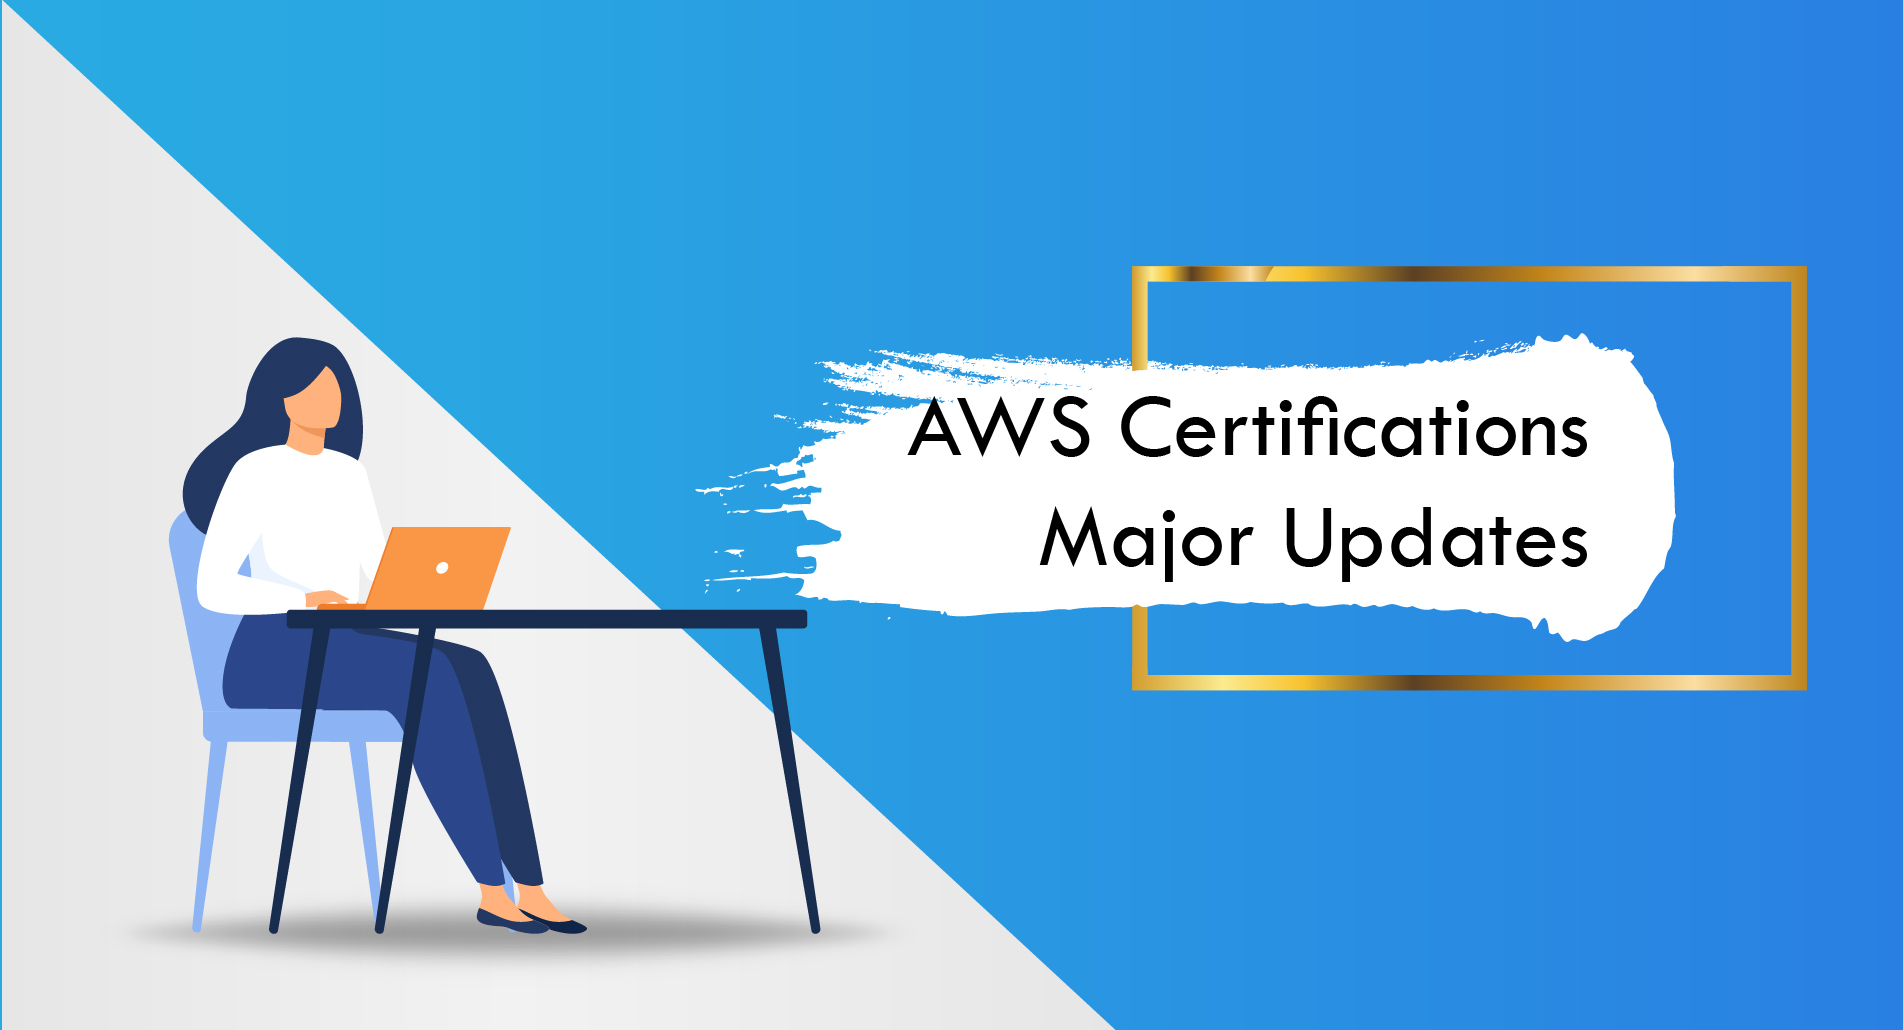 Major Updates of AWS Certifications